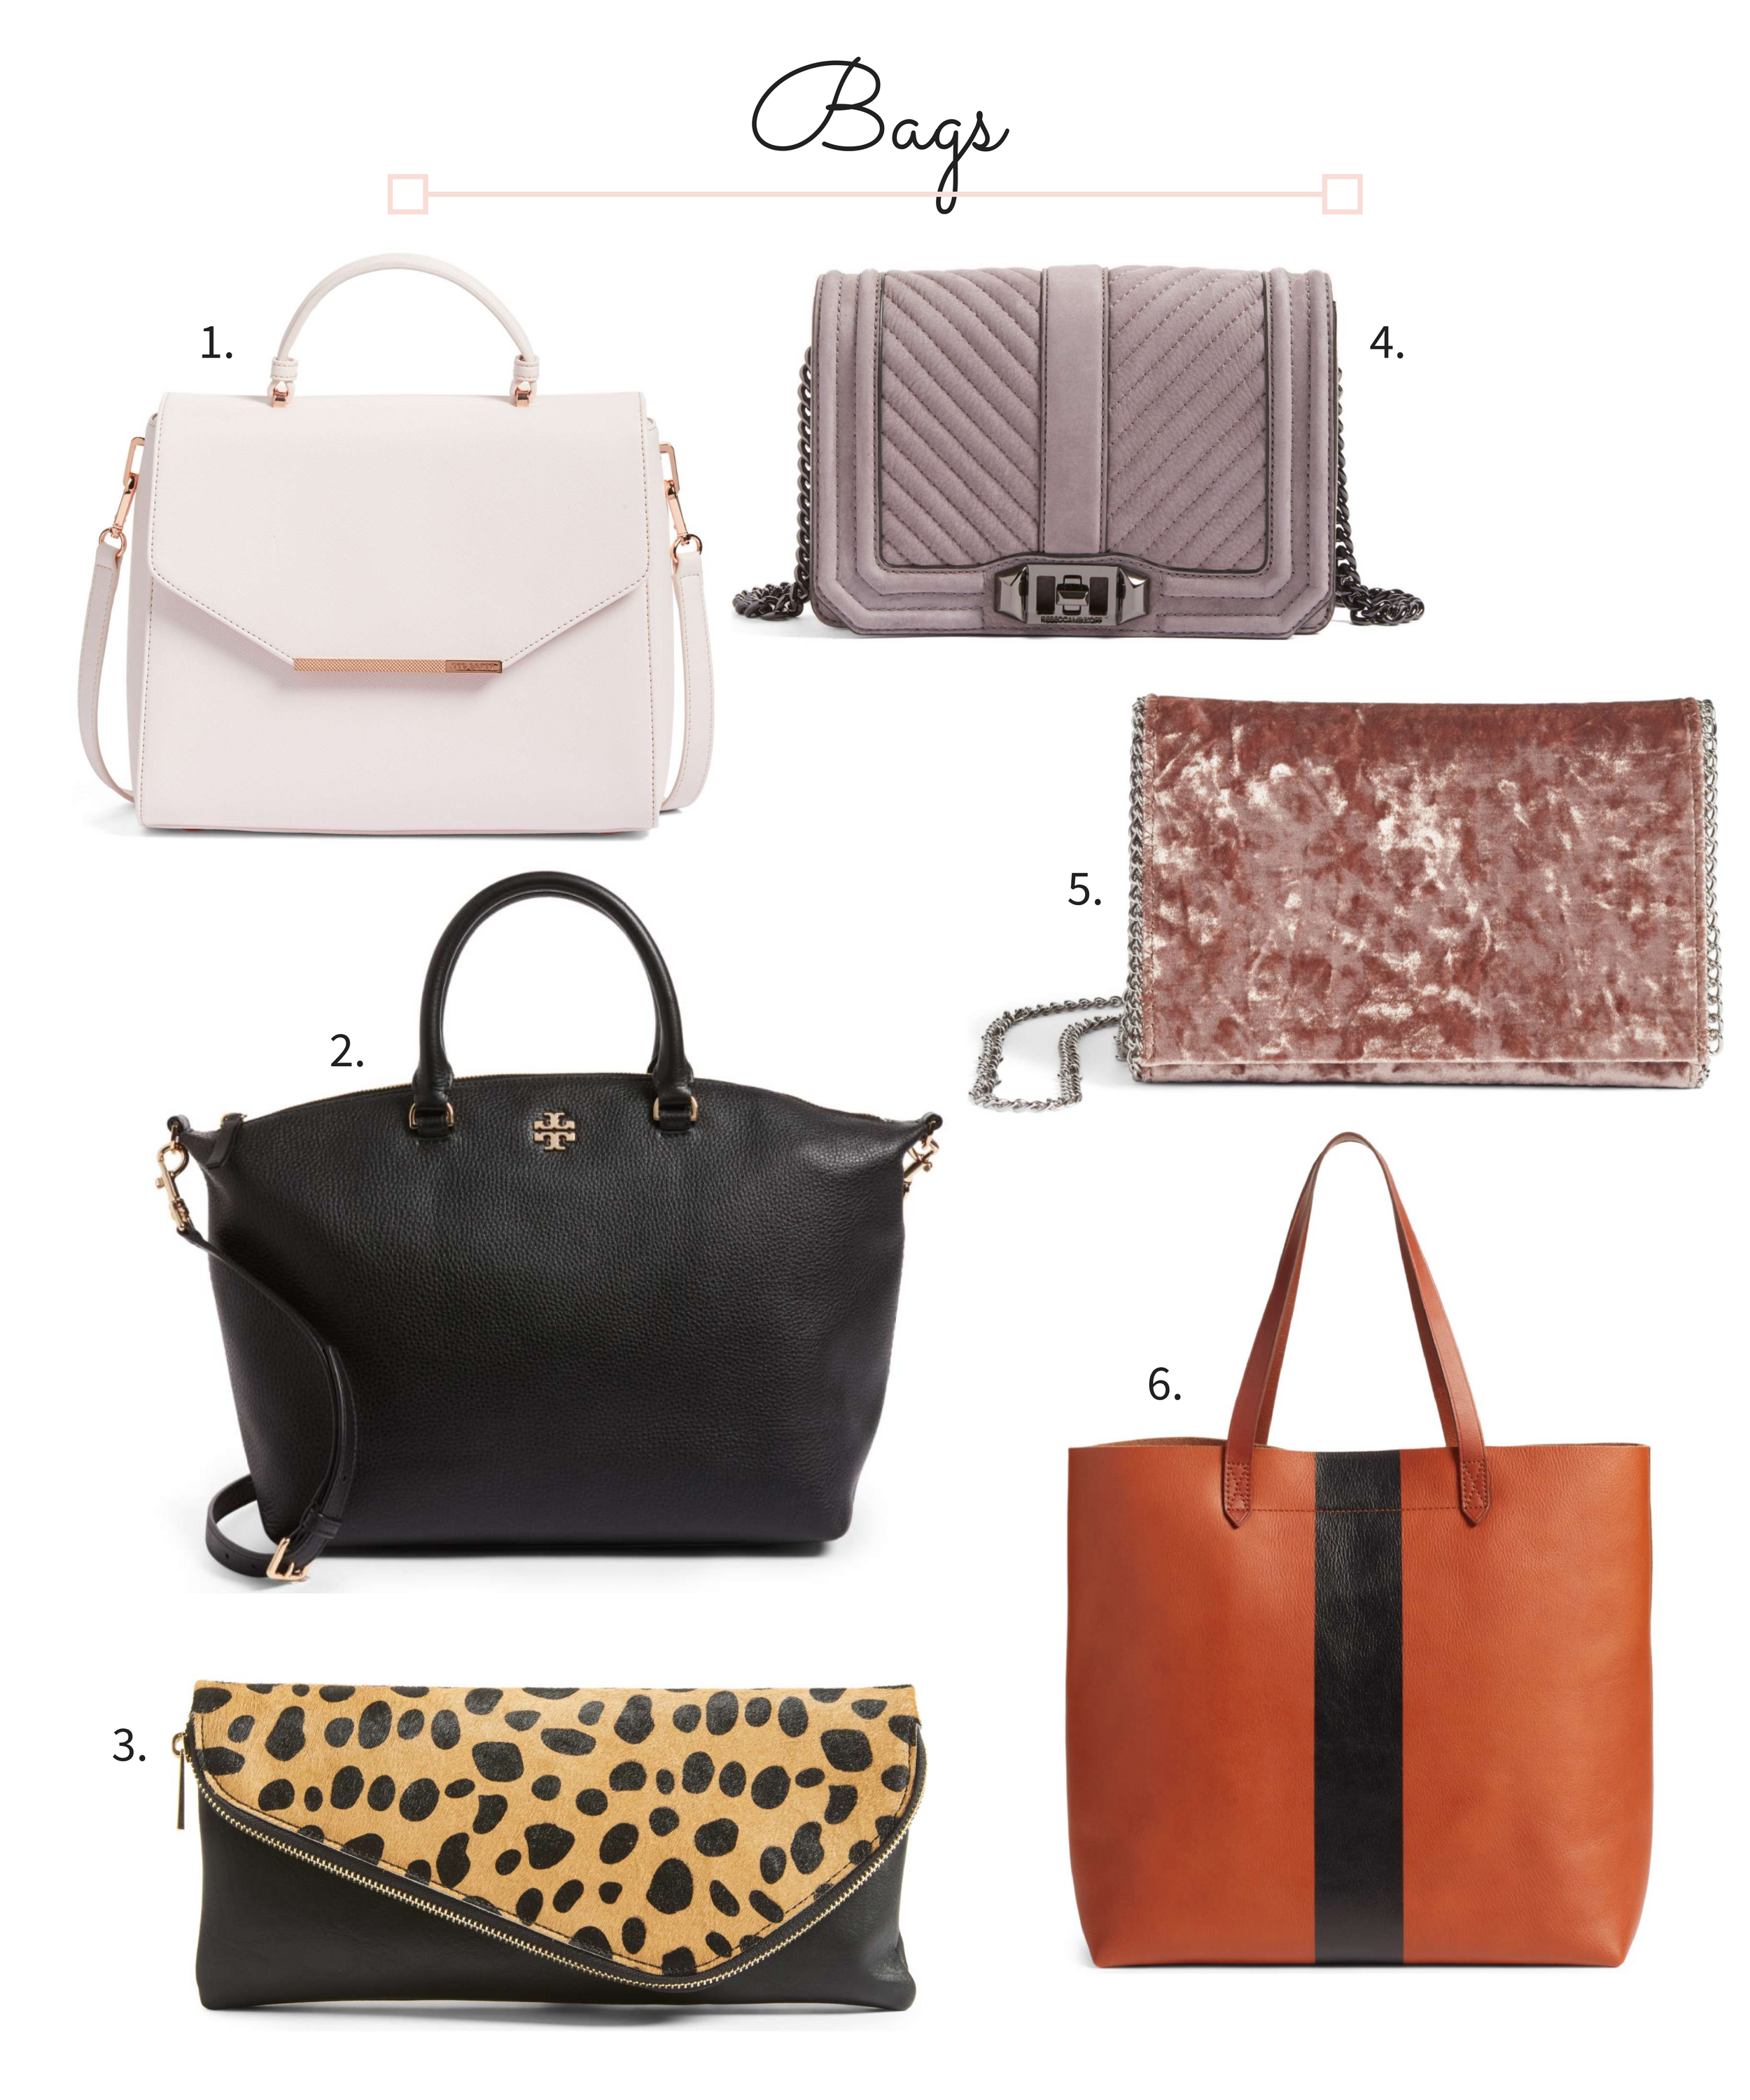 Nordstrom Anniversary Sale picks - bags / purses